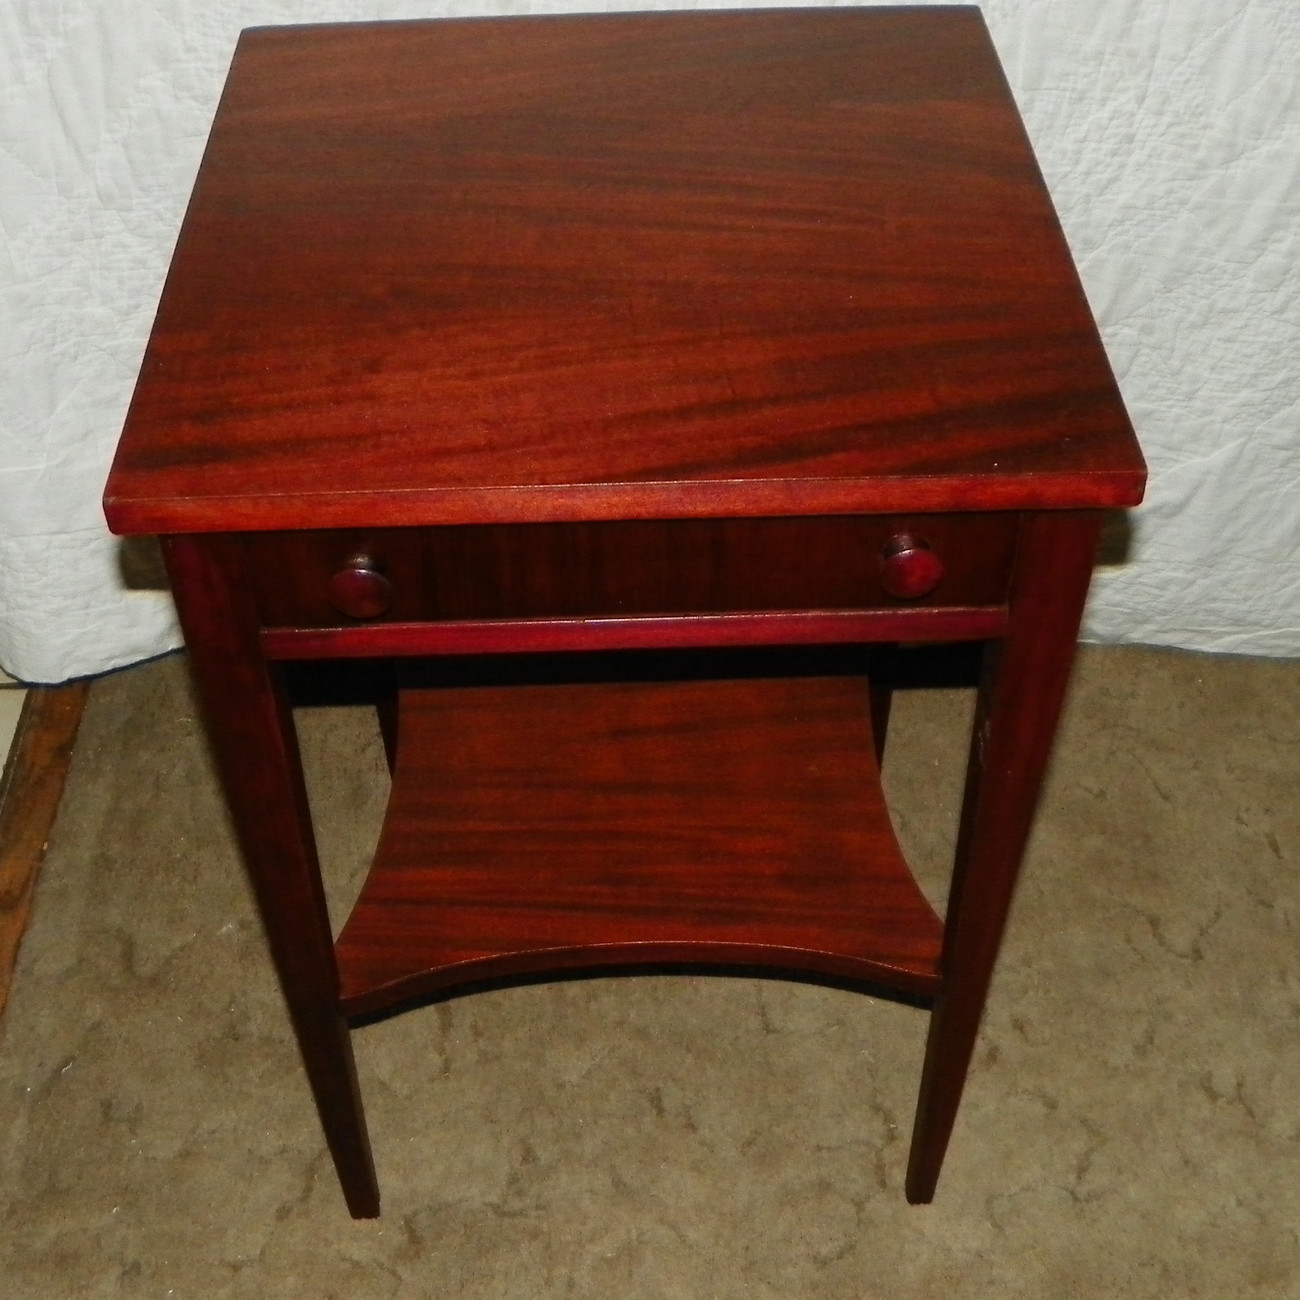 Primary image for Mahogany Side Table / End Table with Drawer  (T155)